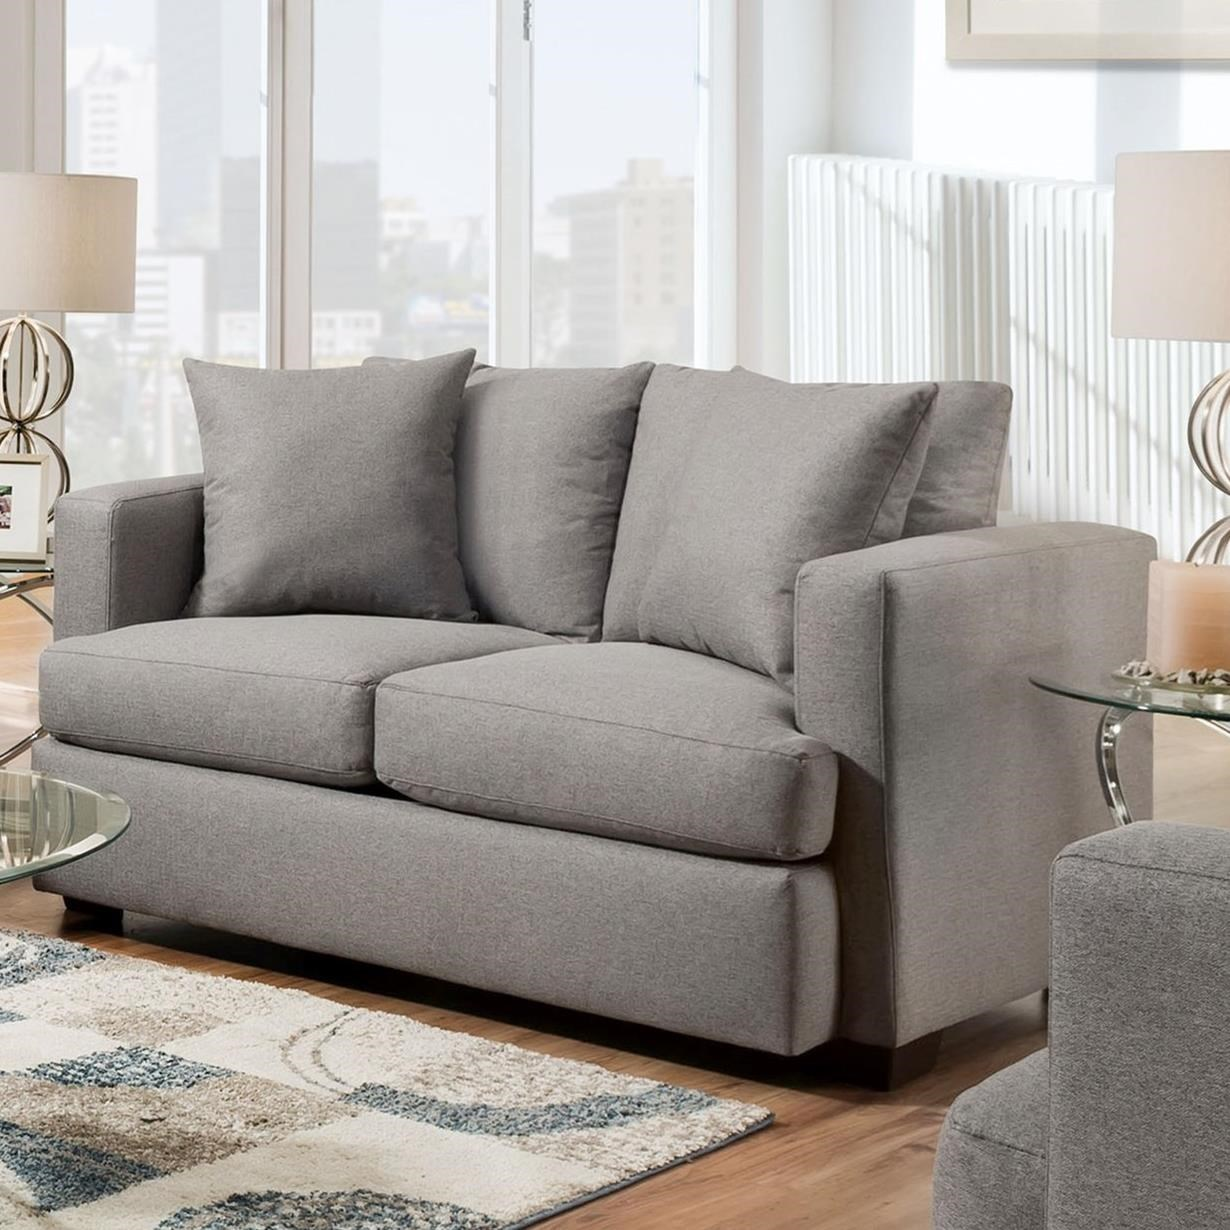 5300 Loveseat by Peak Living at Prime Brothers Furniture